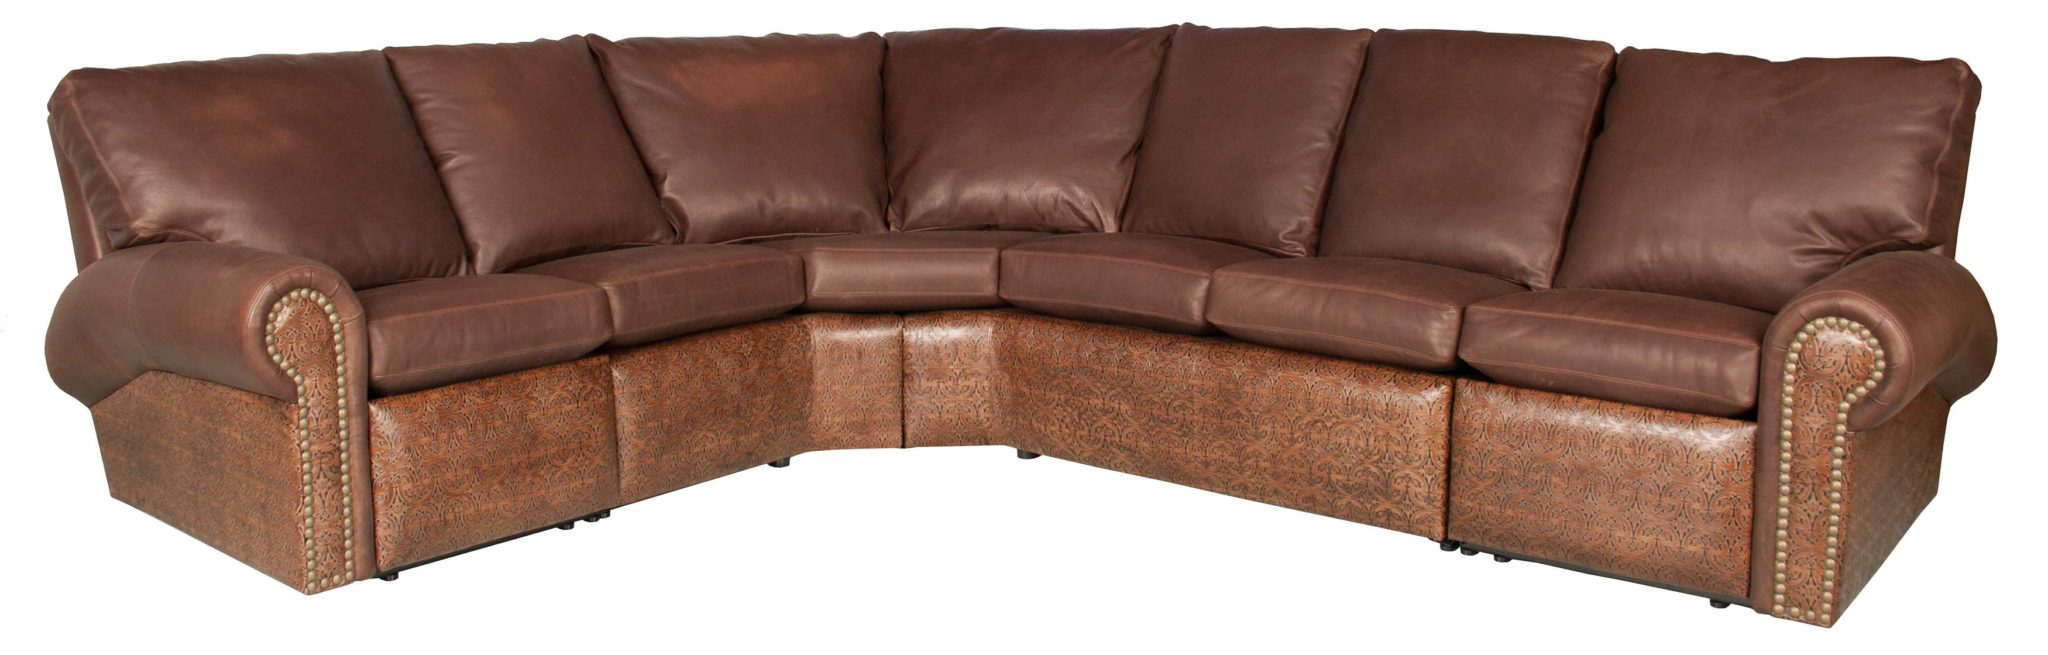 Phoenix reclining leather sectional for Sectional sofas phoenix